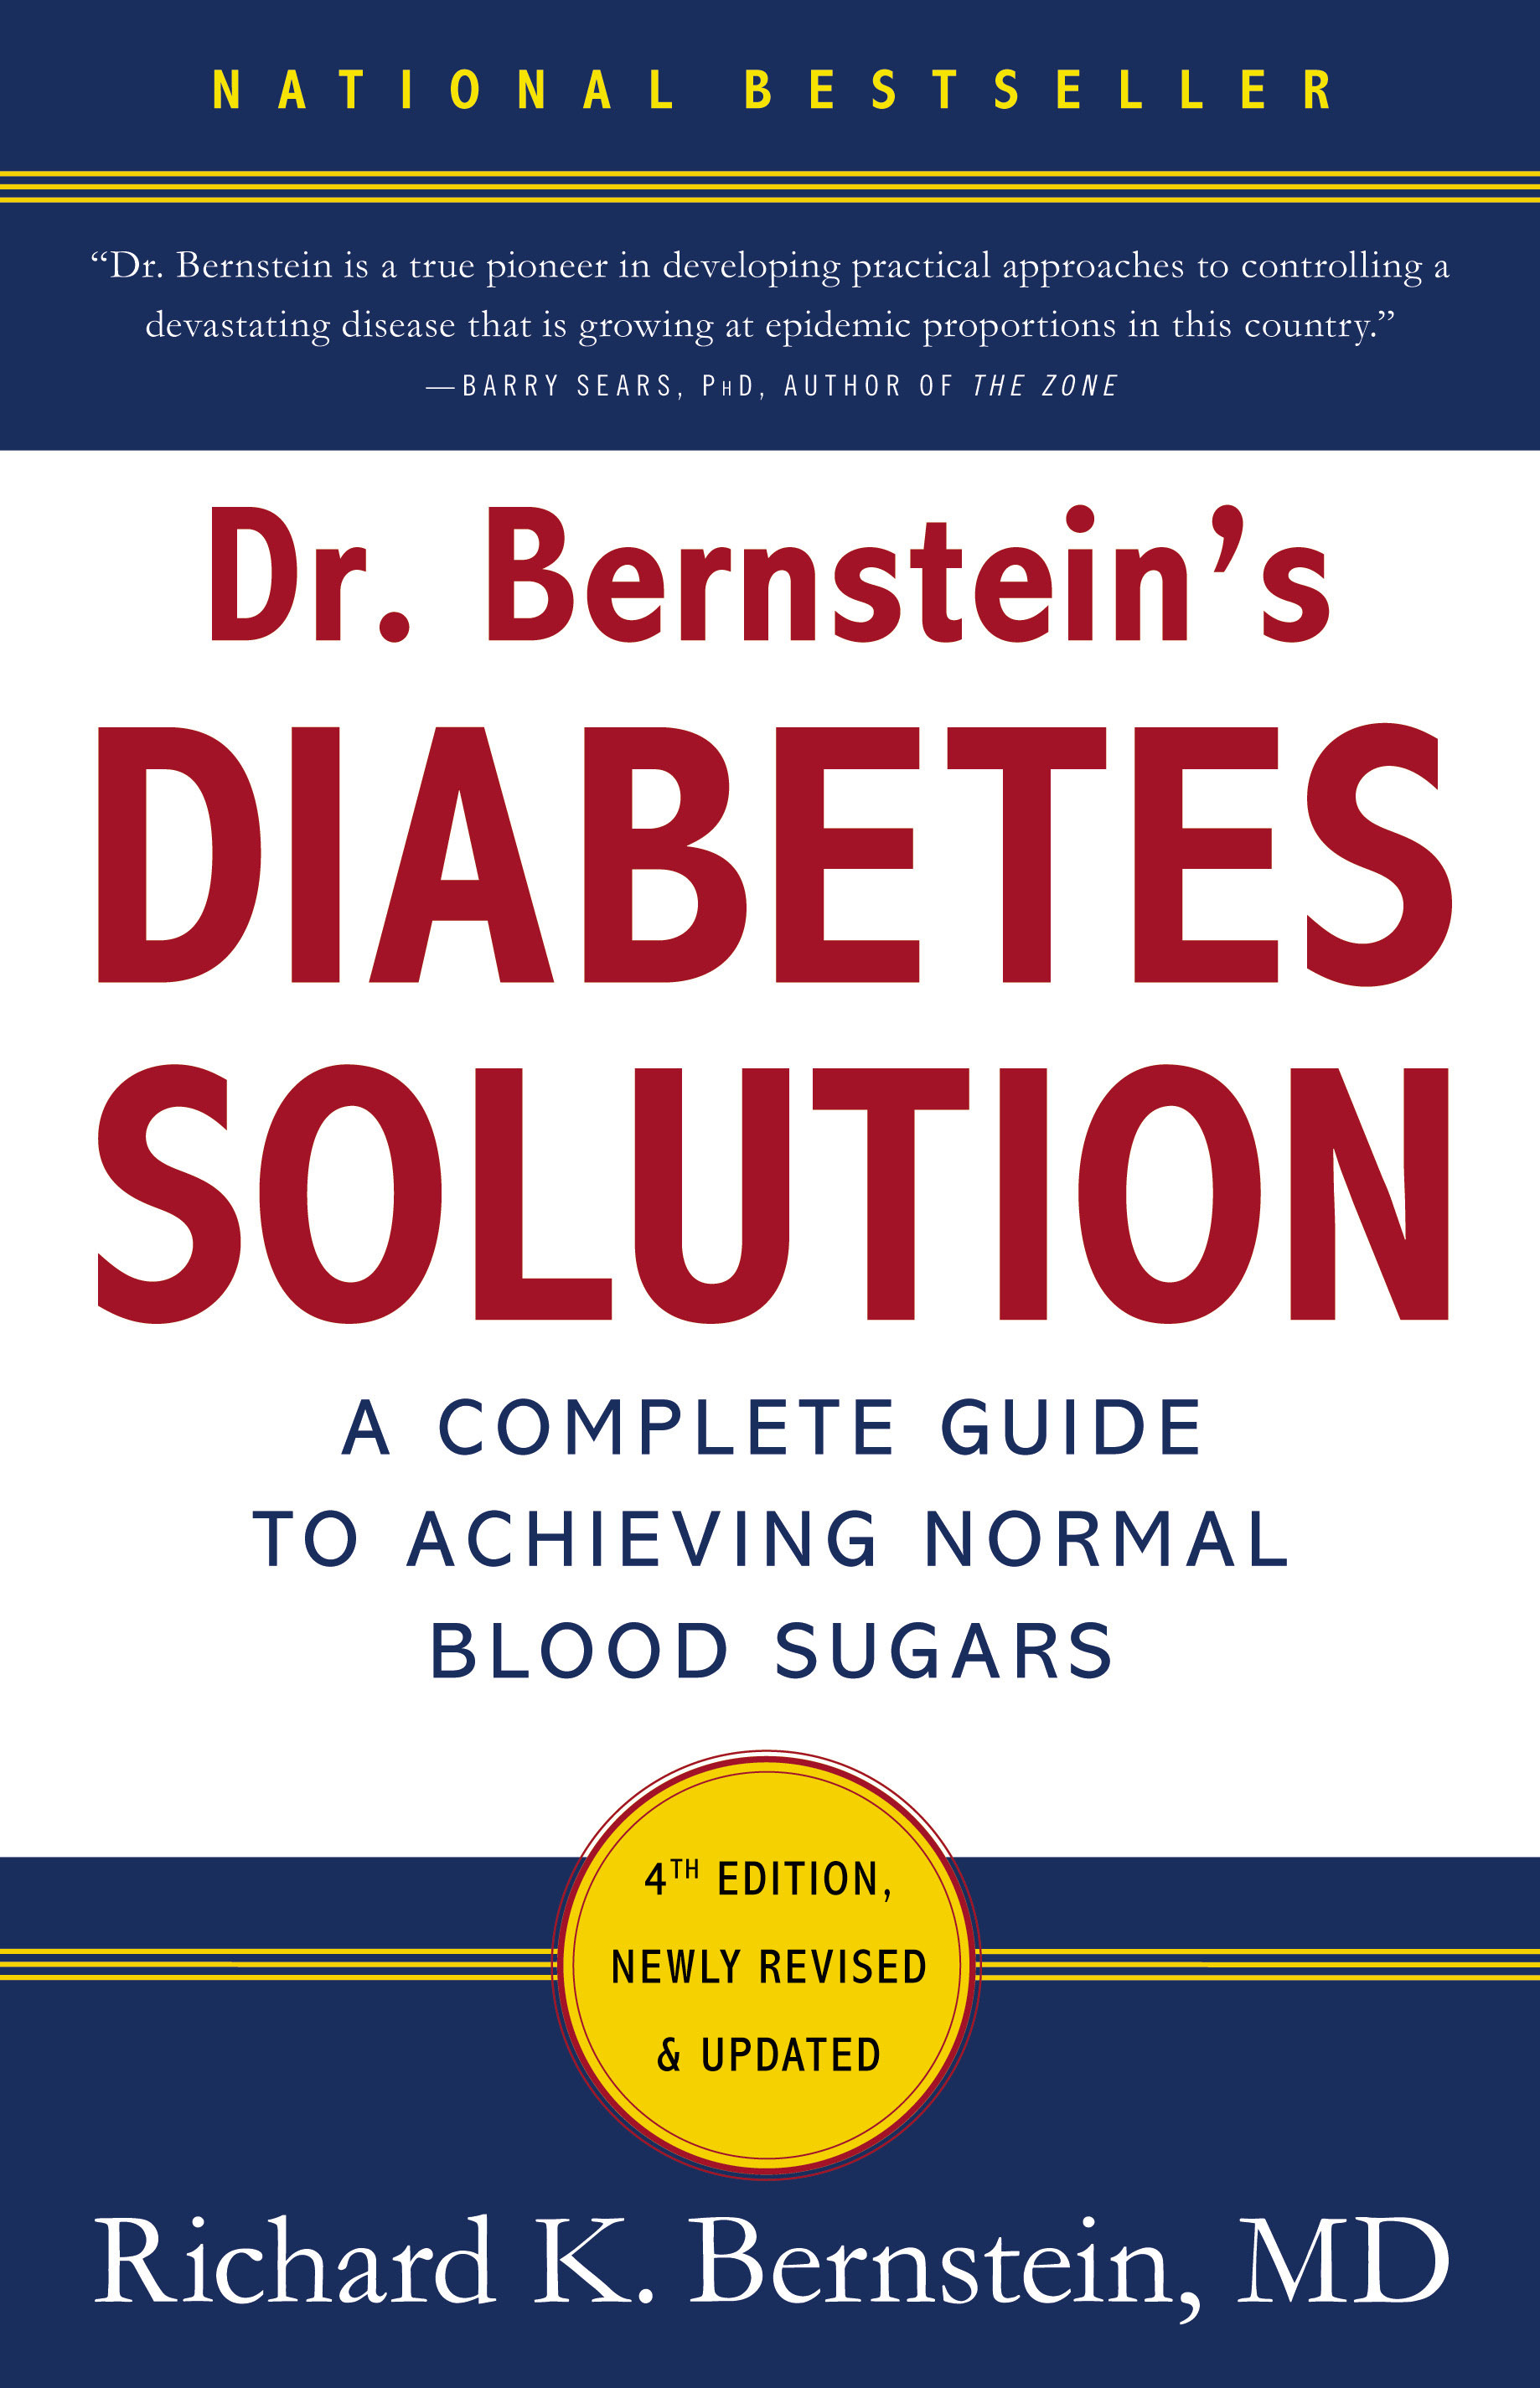 Dr Bernstein's Diabetes Solution: A Complete Guide To Achieving Normal Blood Sugars, 4th Edition